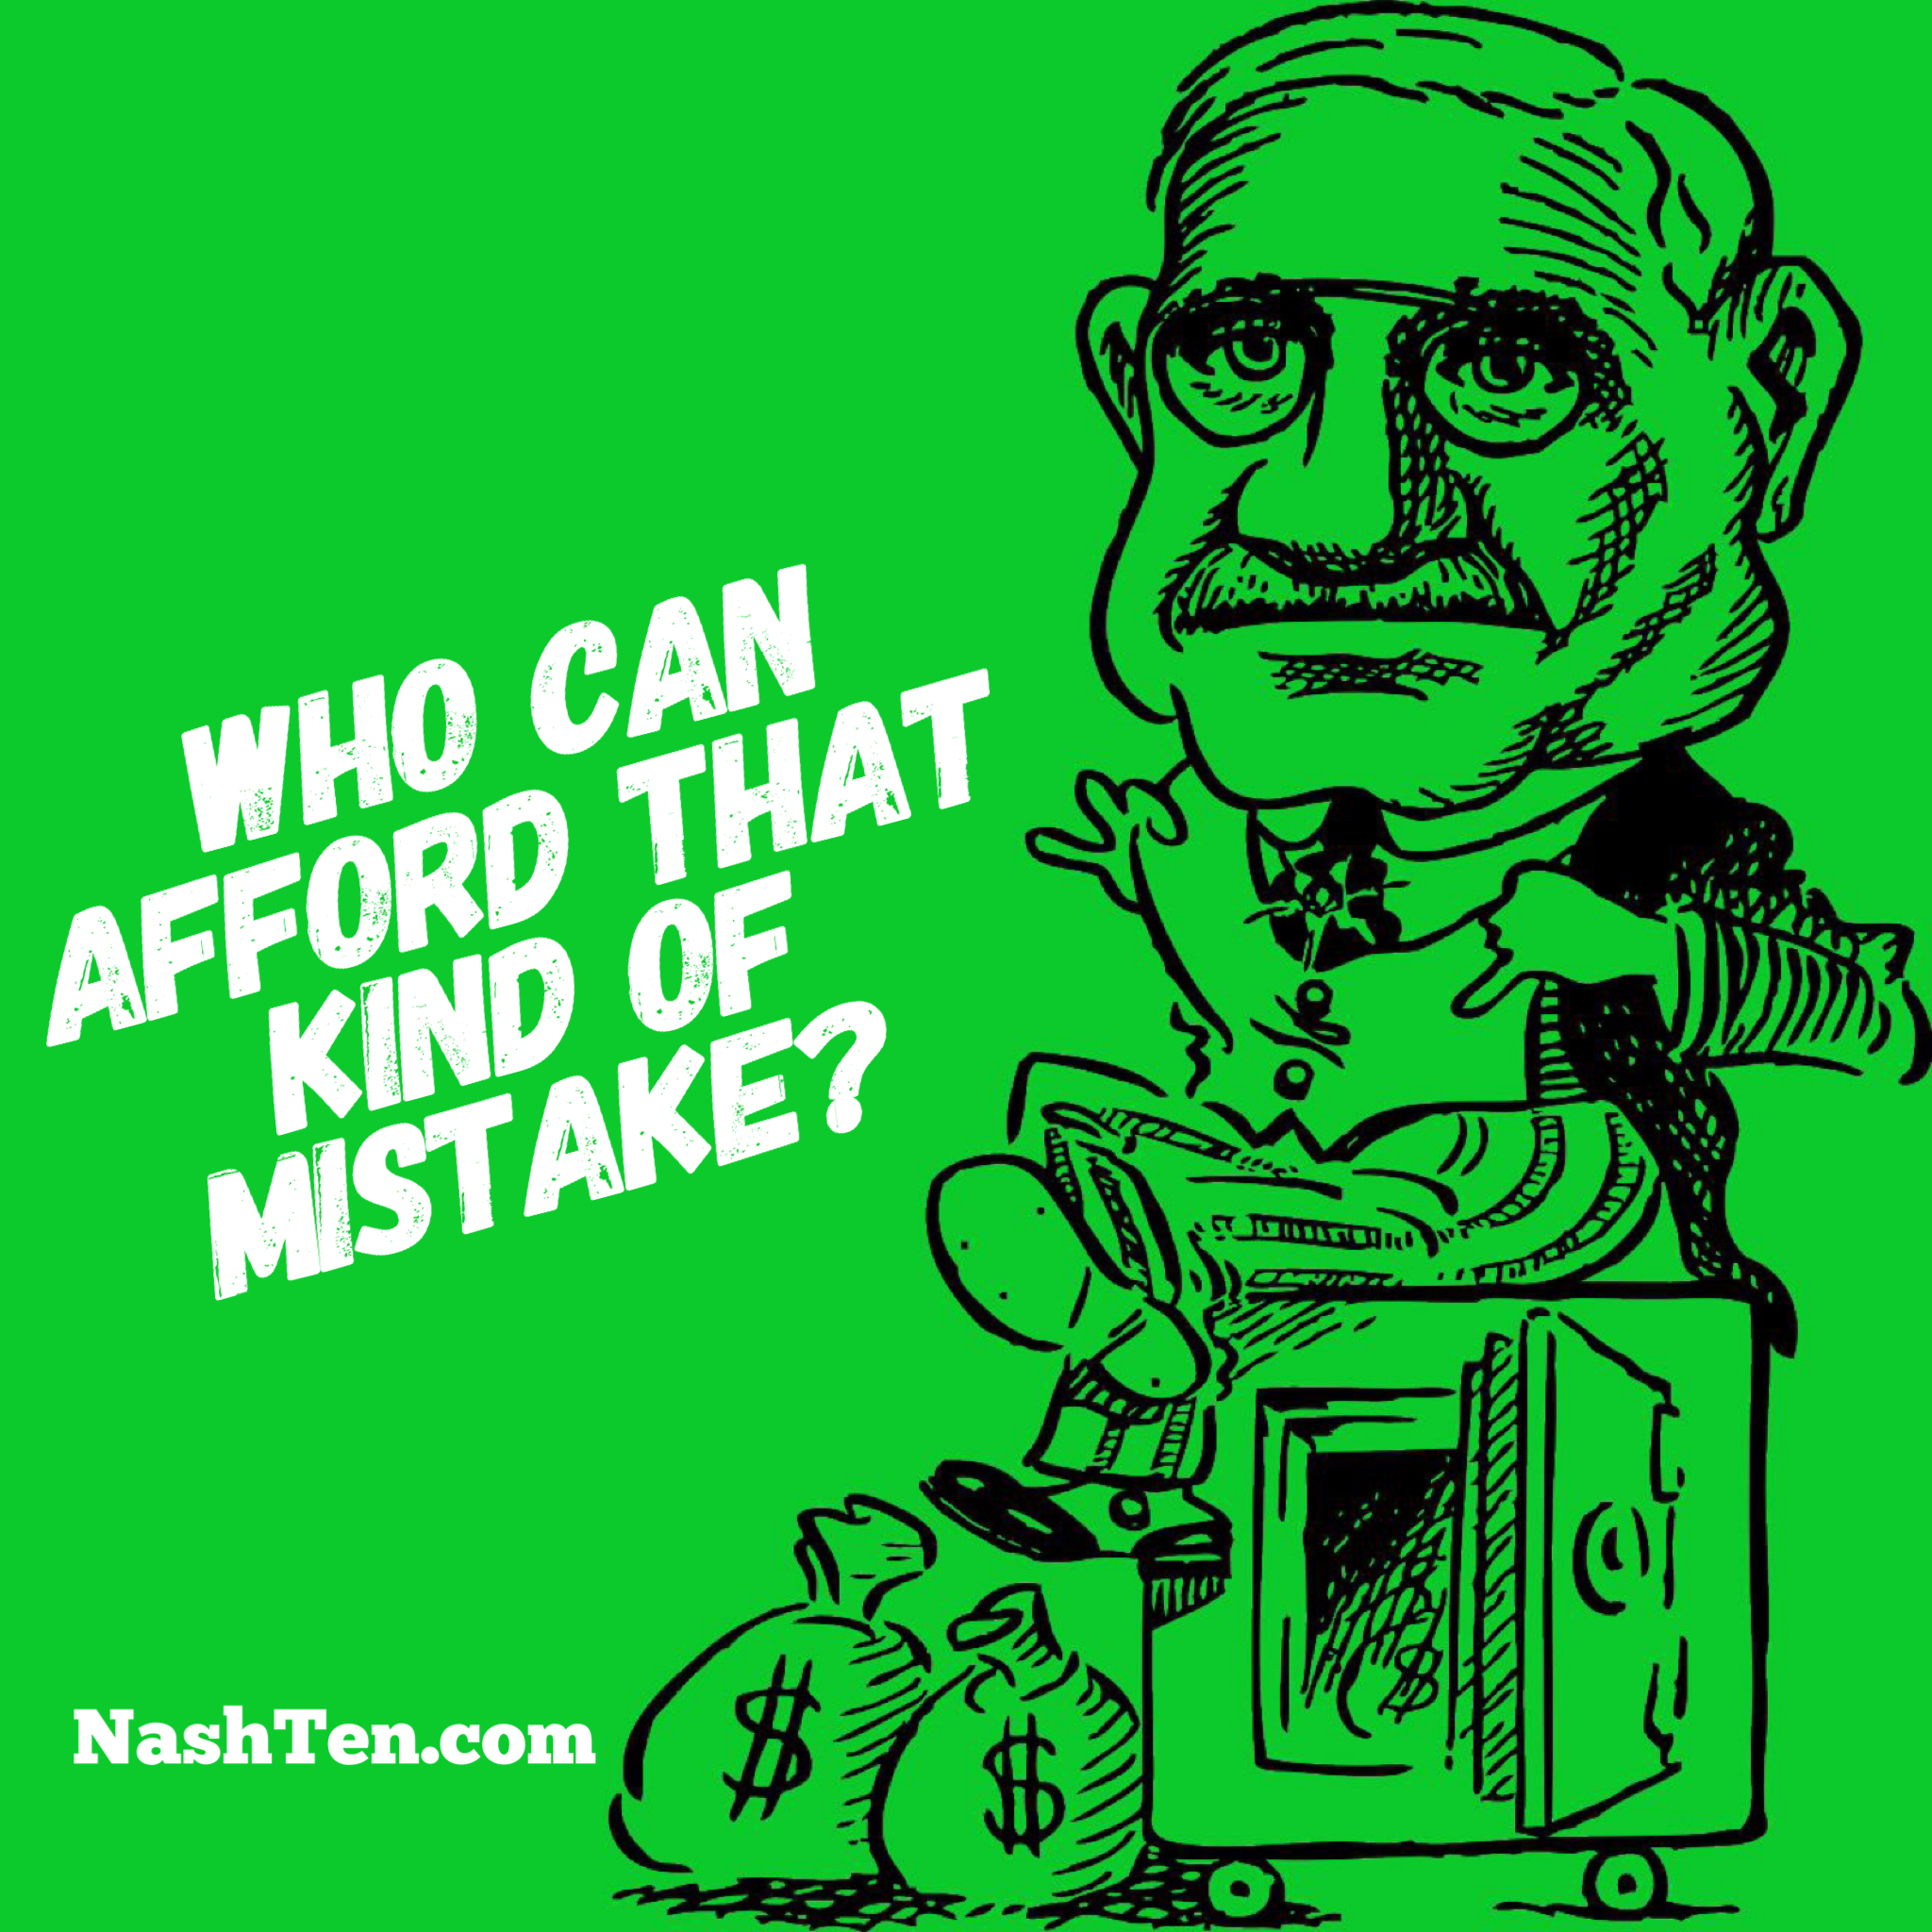 Who can afford that mistake?